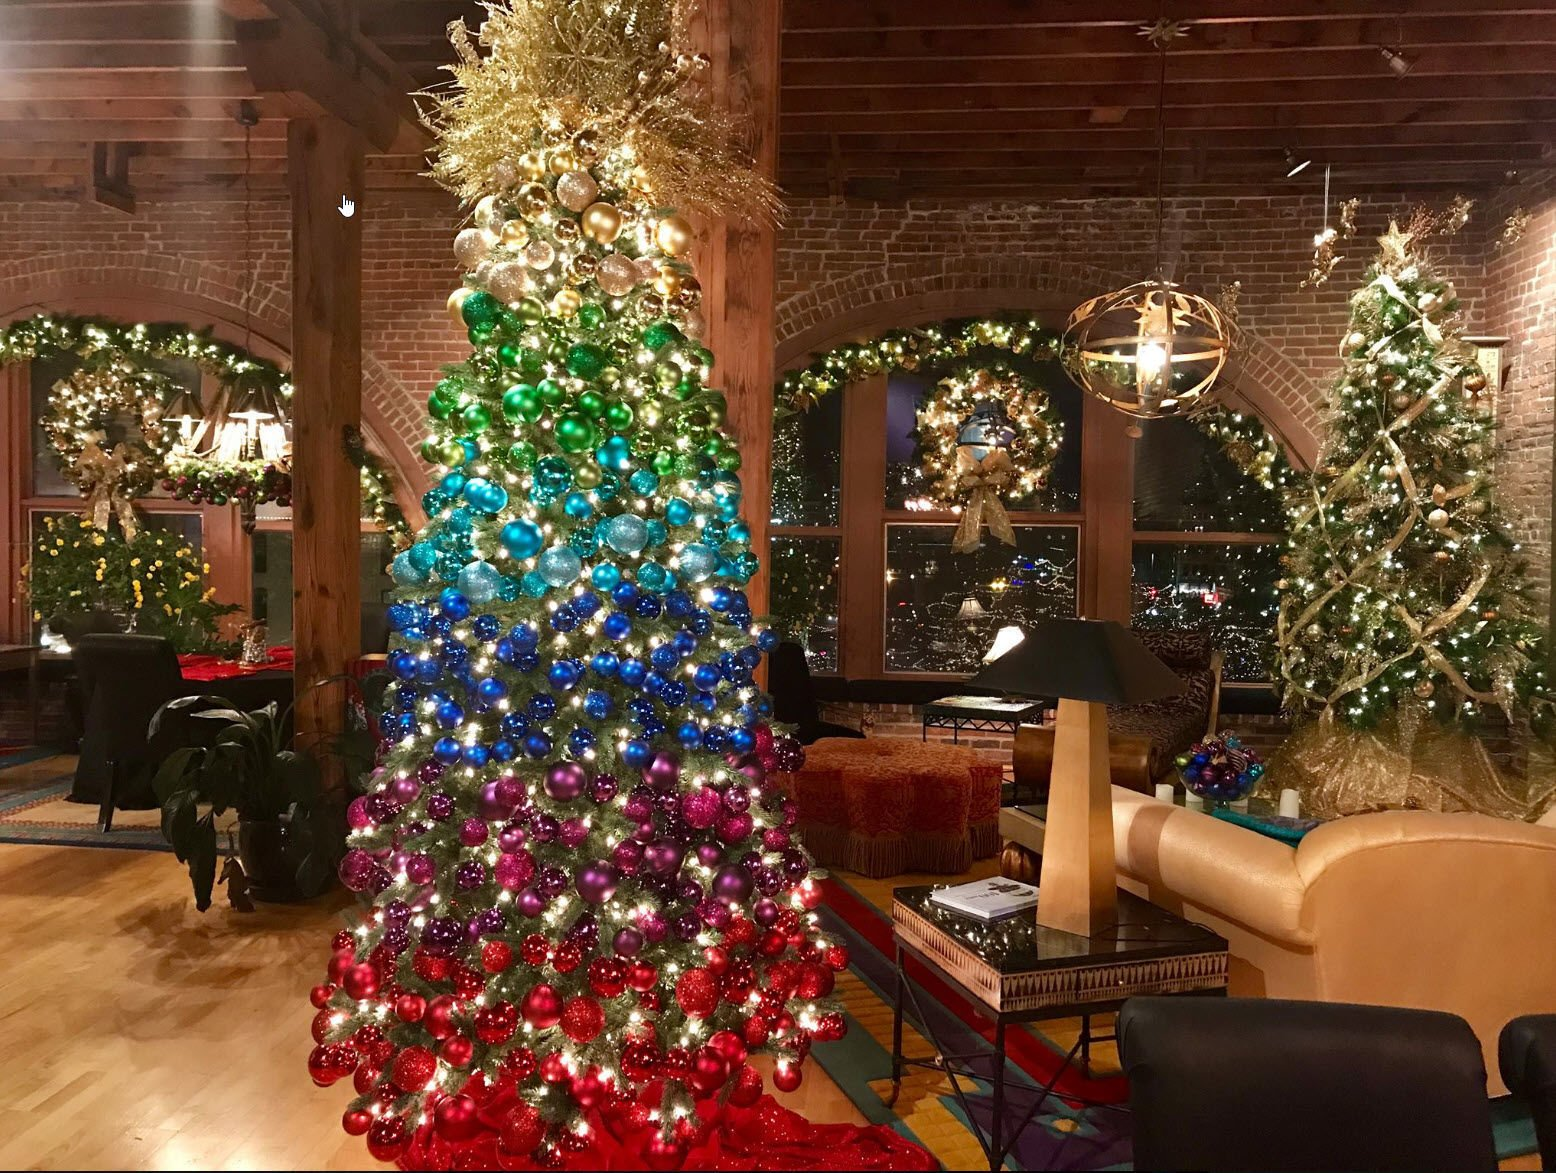 the tree starts with gold starburst and graduates to bulbs in shades of gold green turquoise royal blue purple and red - Royal Blue And Gold Christmas Decorations